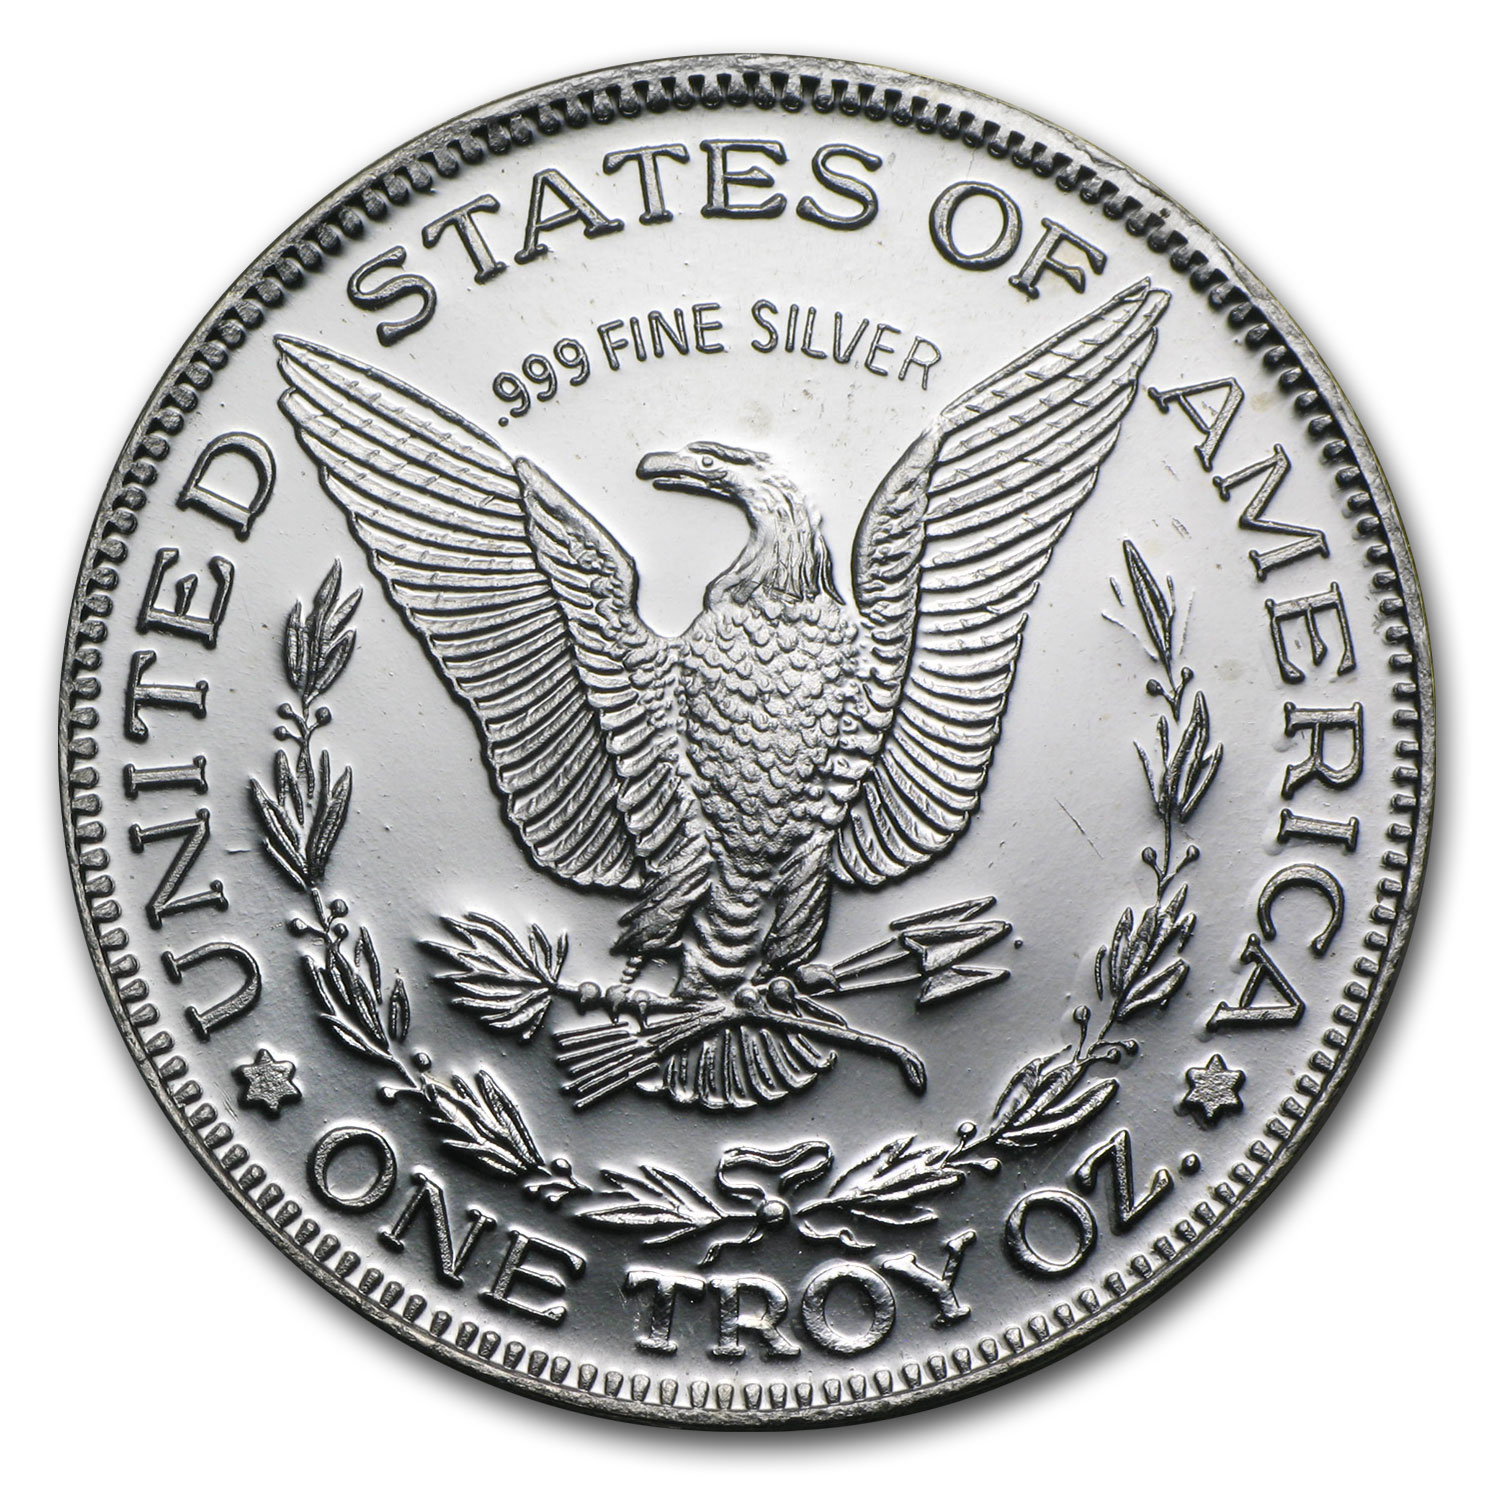 1 oz Silver Round - Statue of Liberty (Symbol of Freedom)